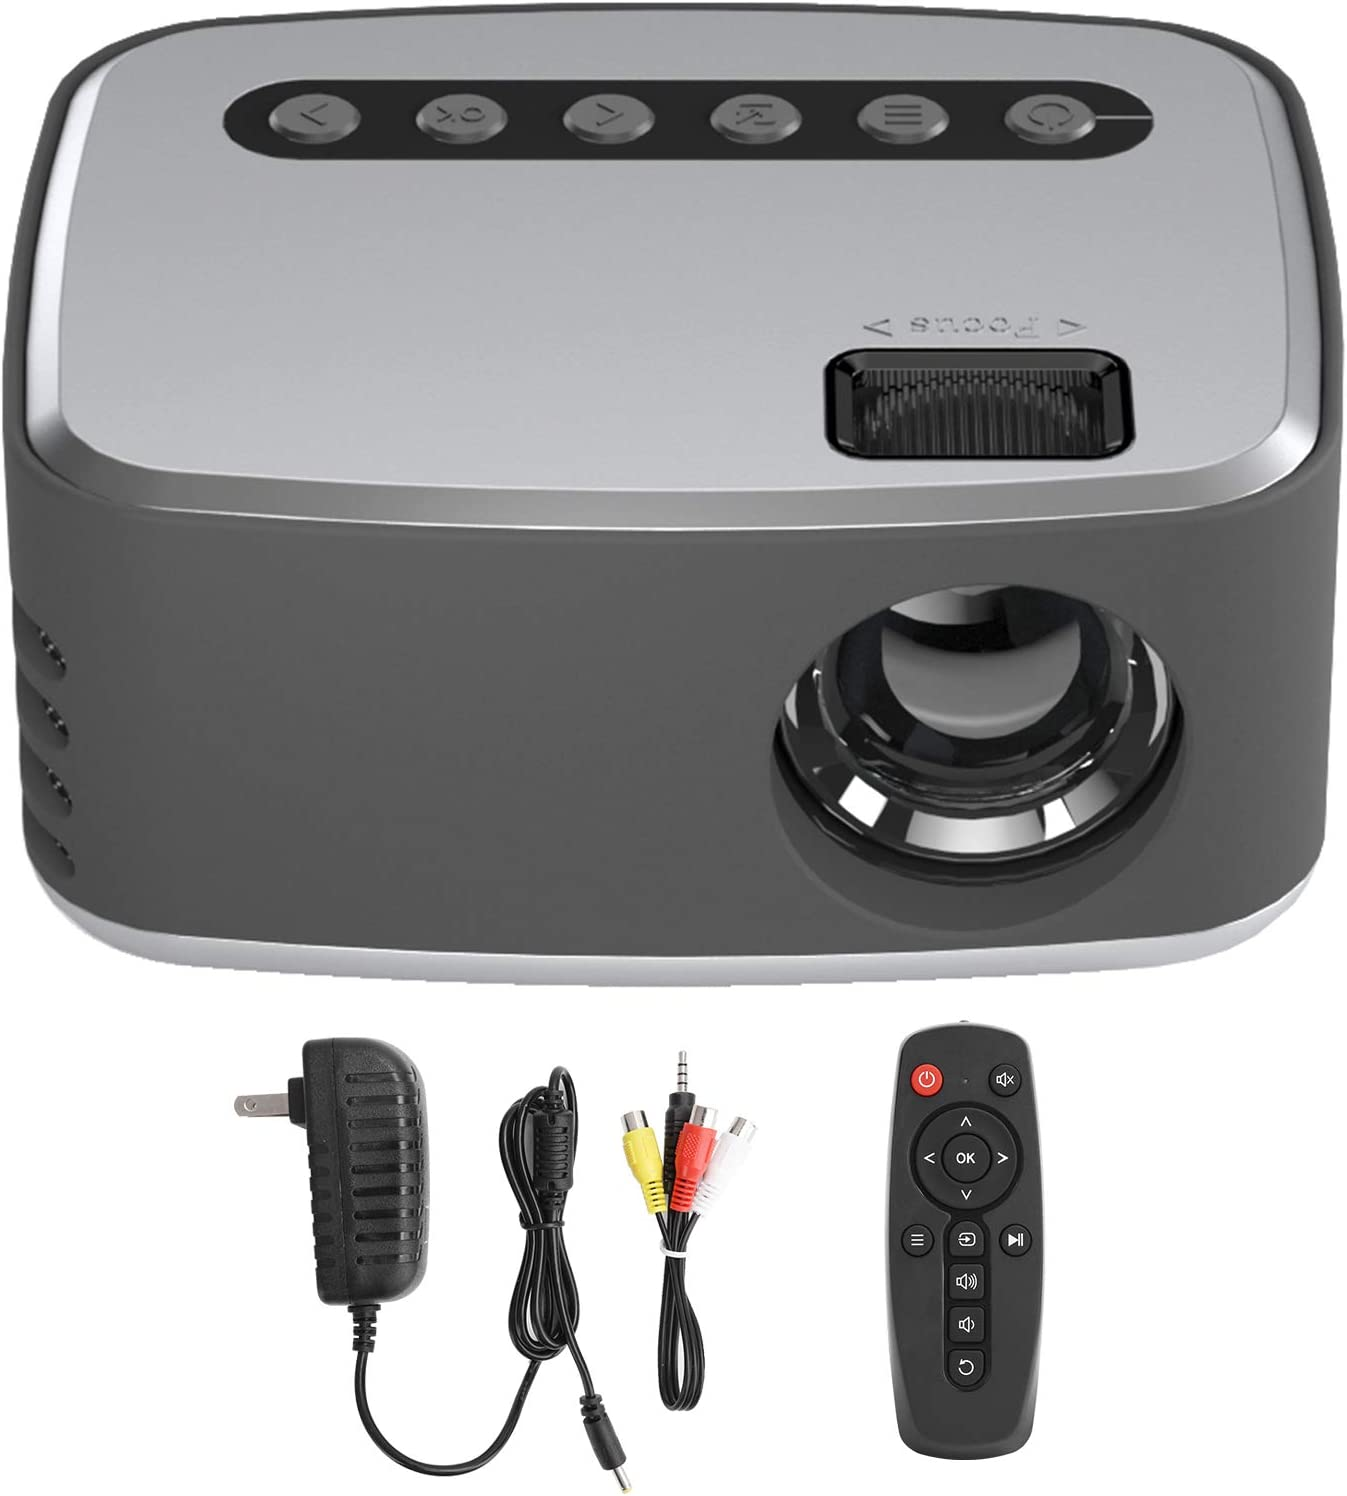 Mini Projector 35% OFF New products, world's highest quality popular! Short Focus with Portable Design Movie